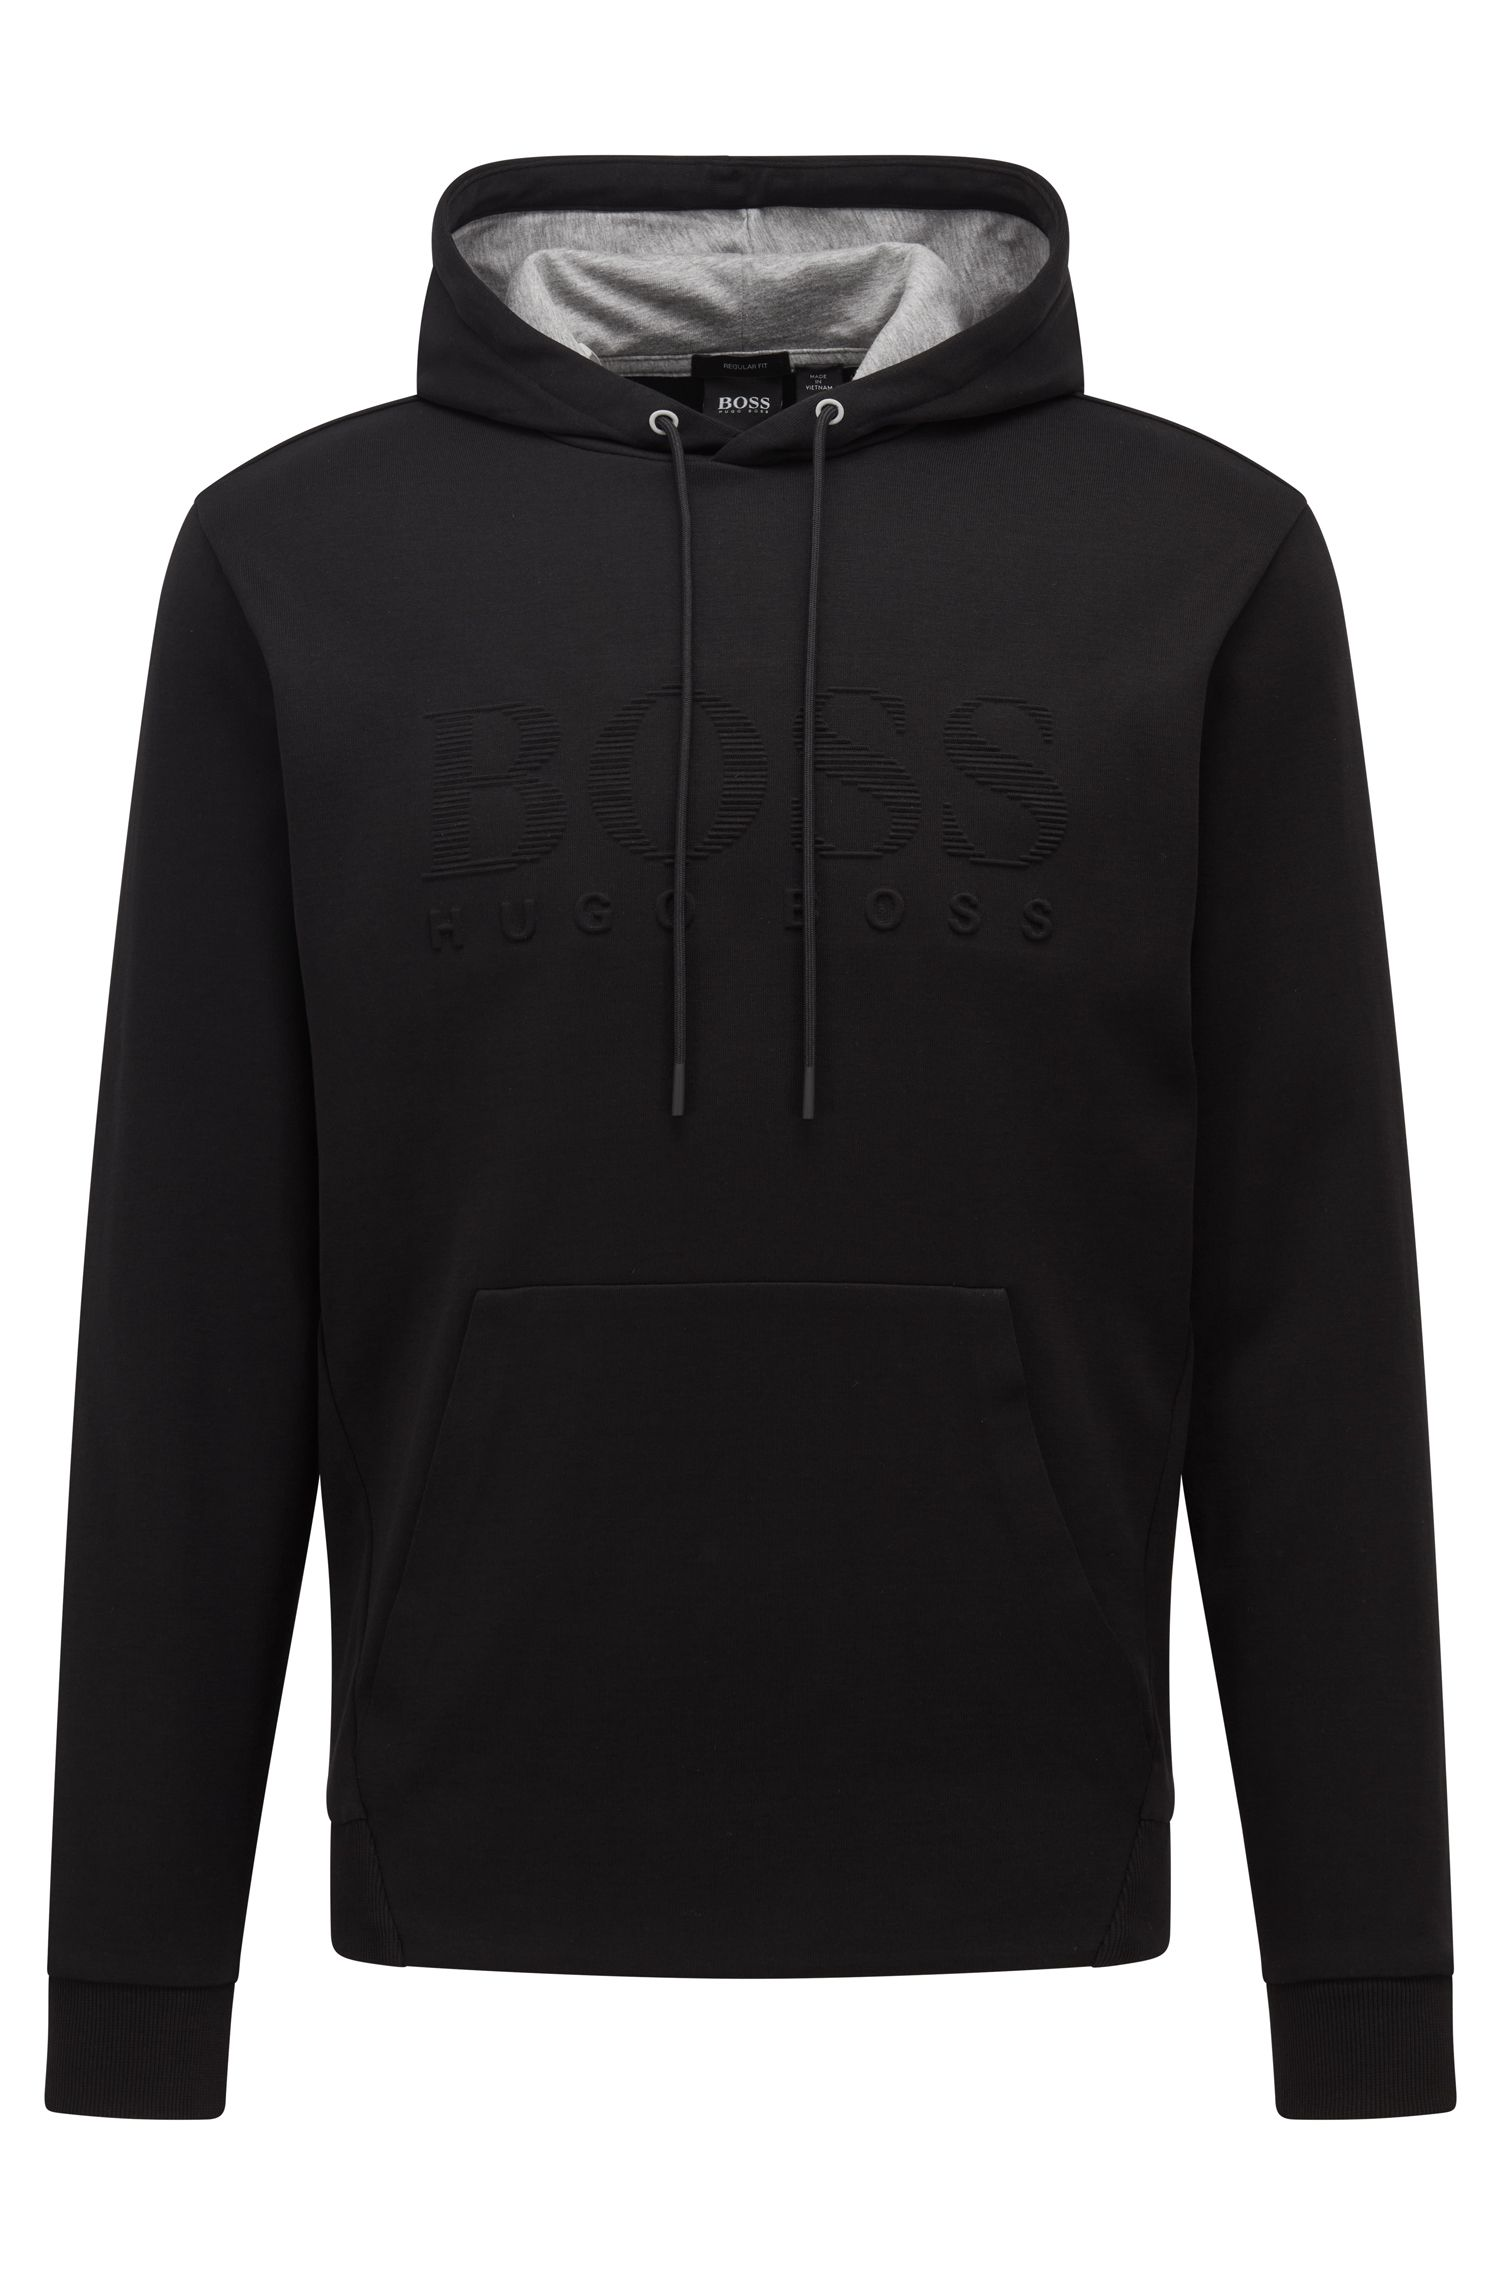 Double-faced hooded sweatshirt with embossed logo, Black